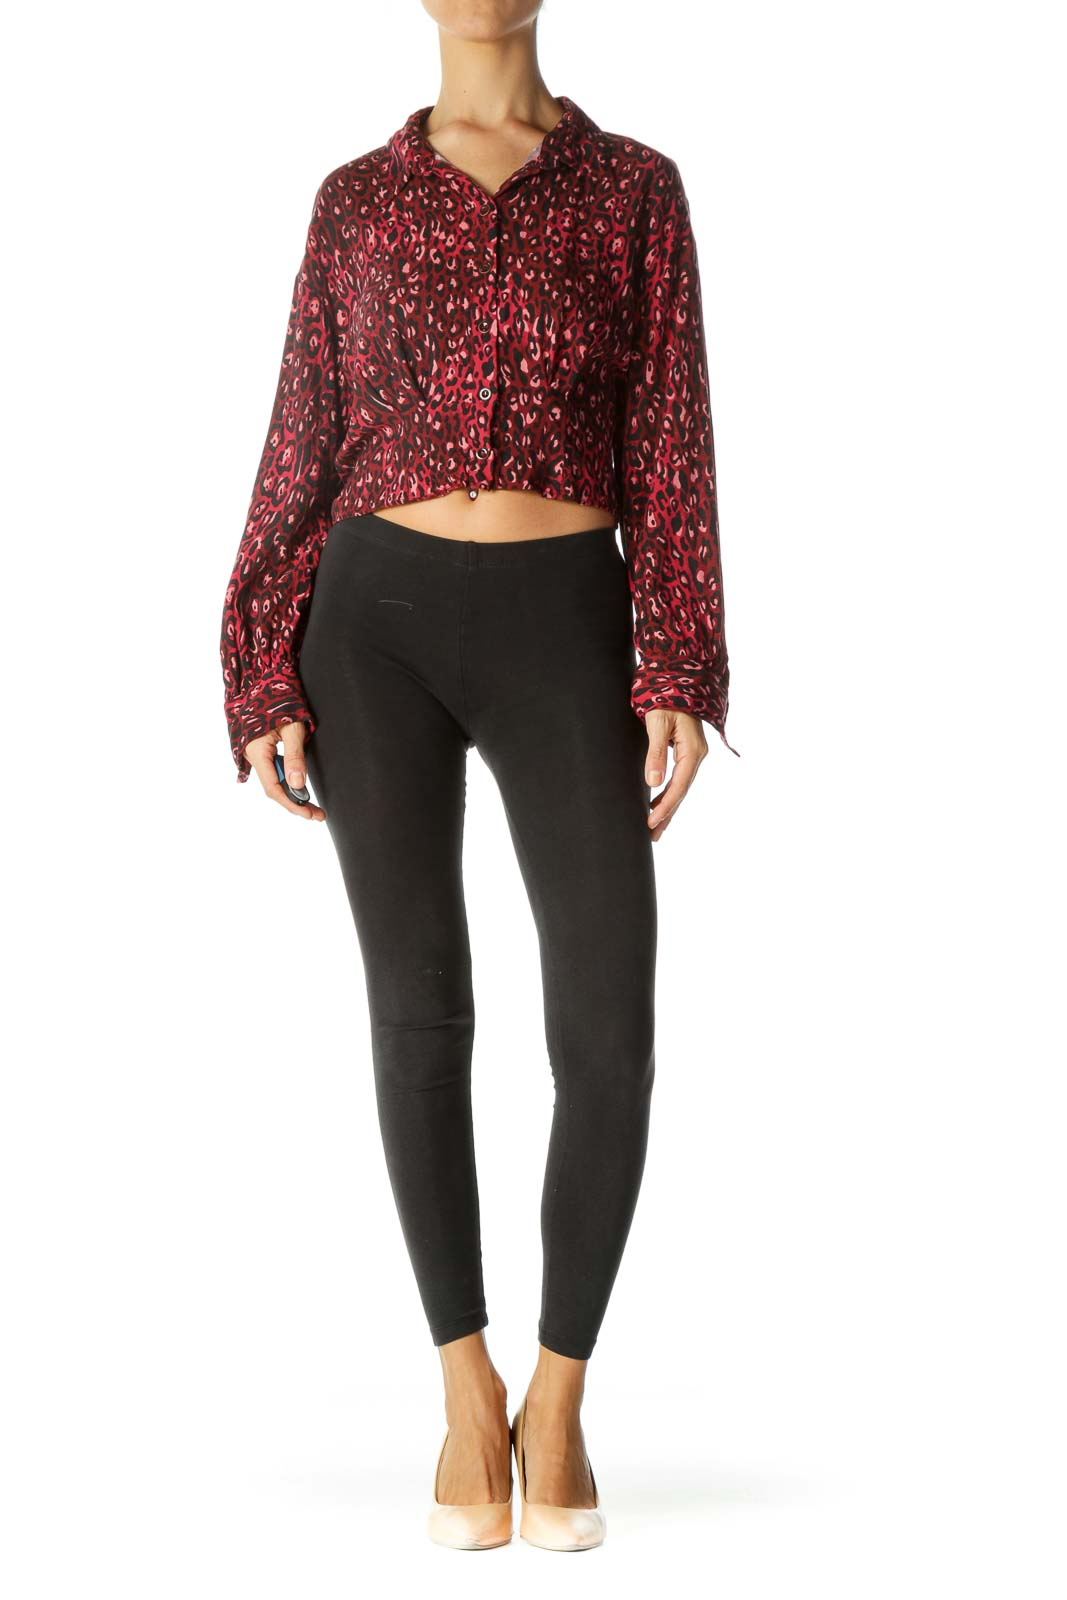 Burgundy Black Animal Print Long Sleeve Buttoned Top